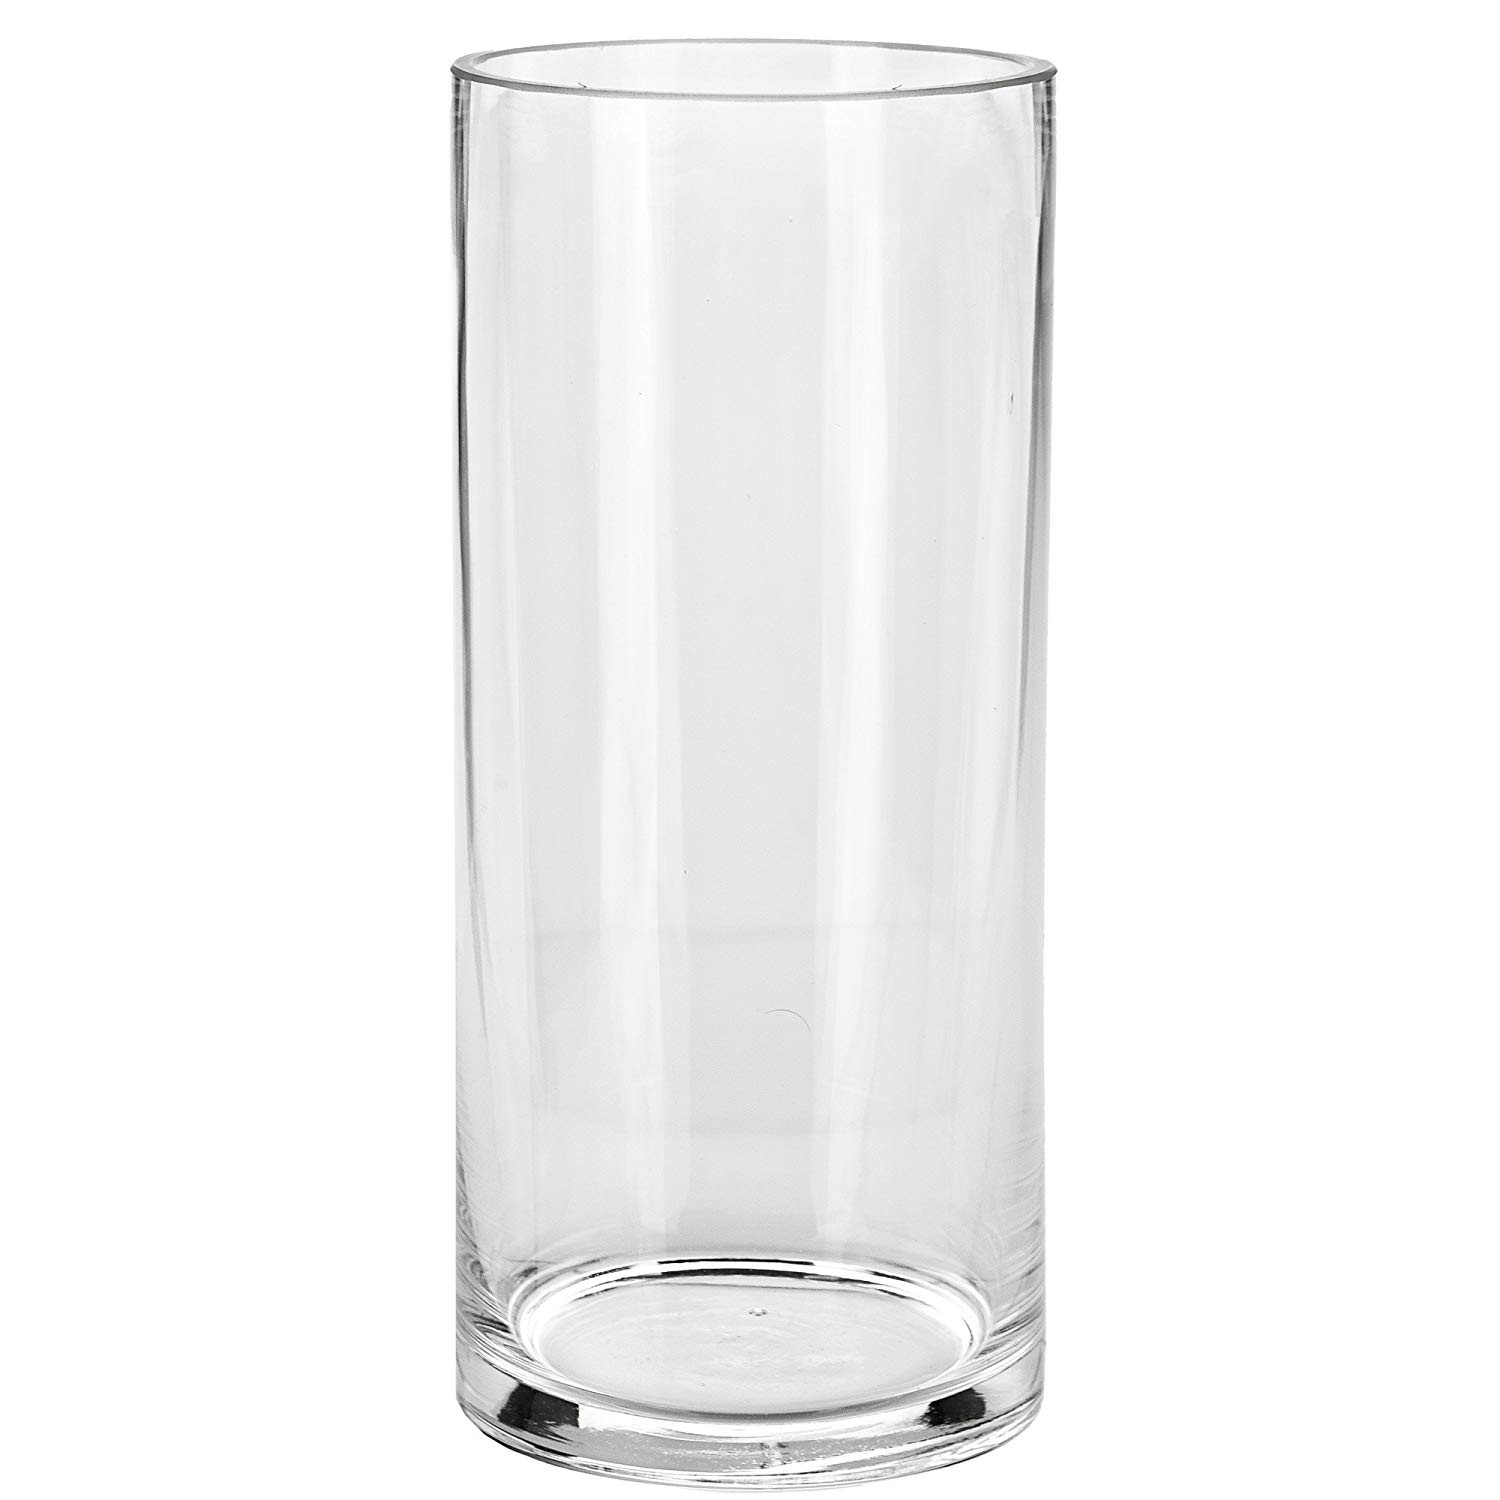 14 Wonderful 6 Inch Cylinder Vase 2021 free download 6 inch cylinder vase of amazon com couronne company 7250 large cylinder glass vase 67 6 oz intended for amazon com couronne company 7250 large cylinder glass vase 67 6 oz capacity home kitch